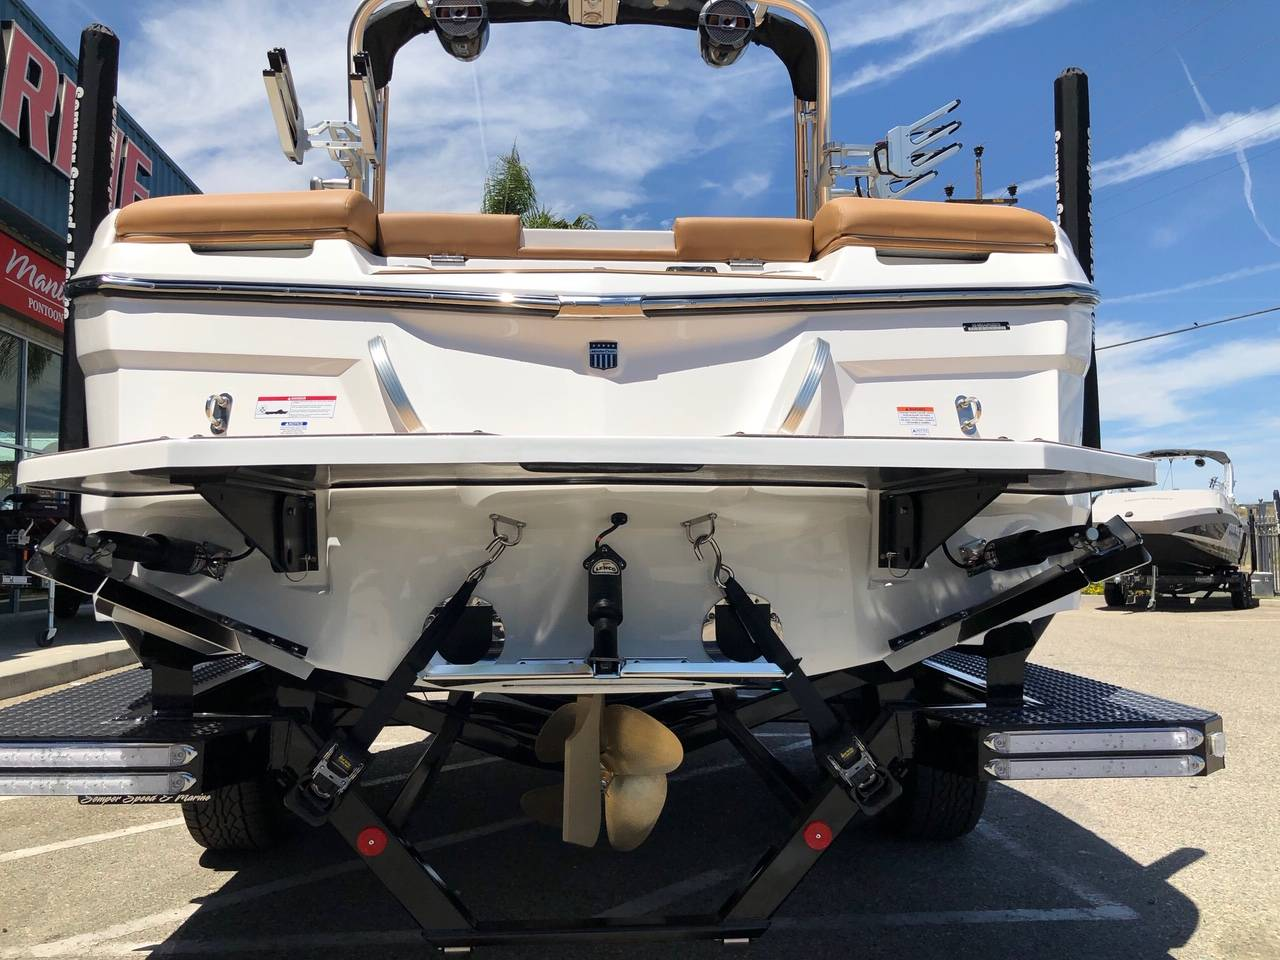 2019 Mastercraft XT22 in Madera, California - Photo 5